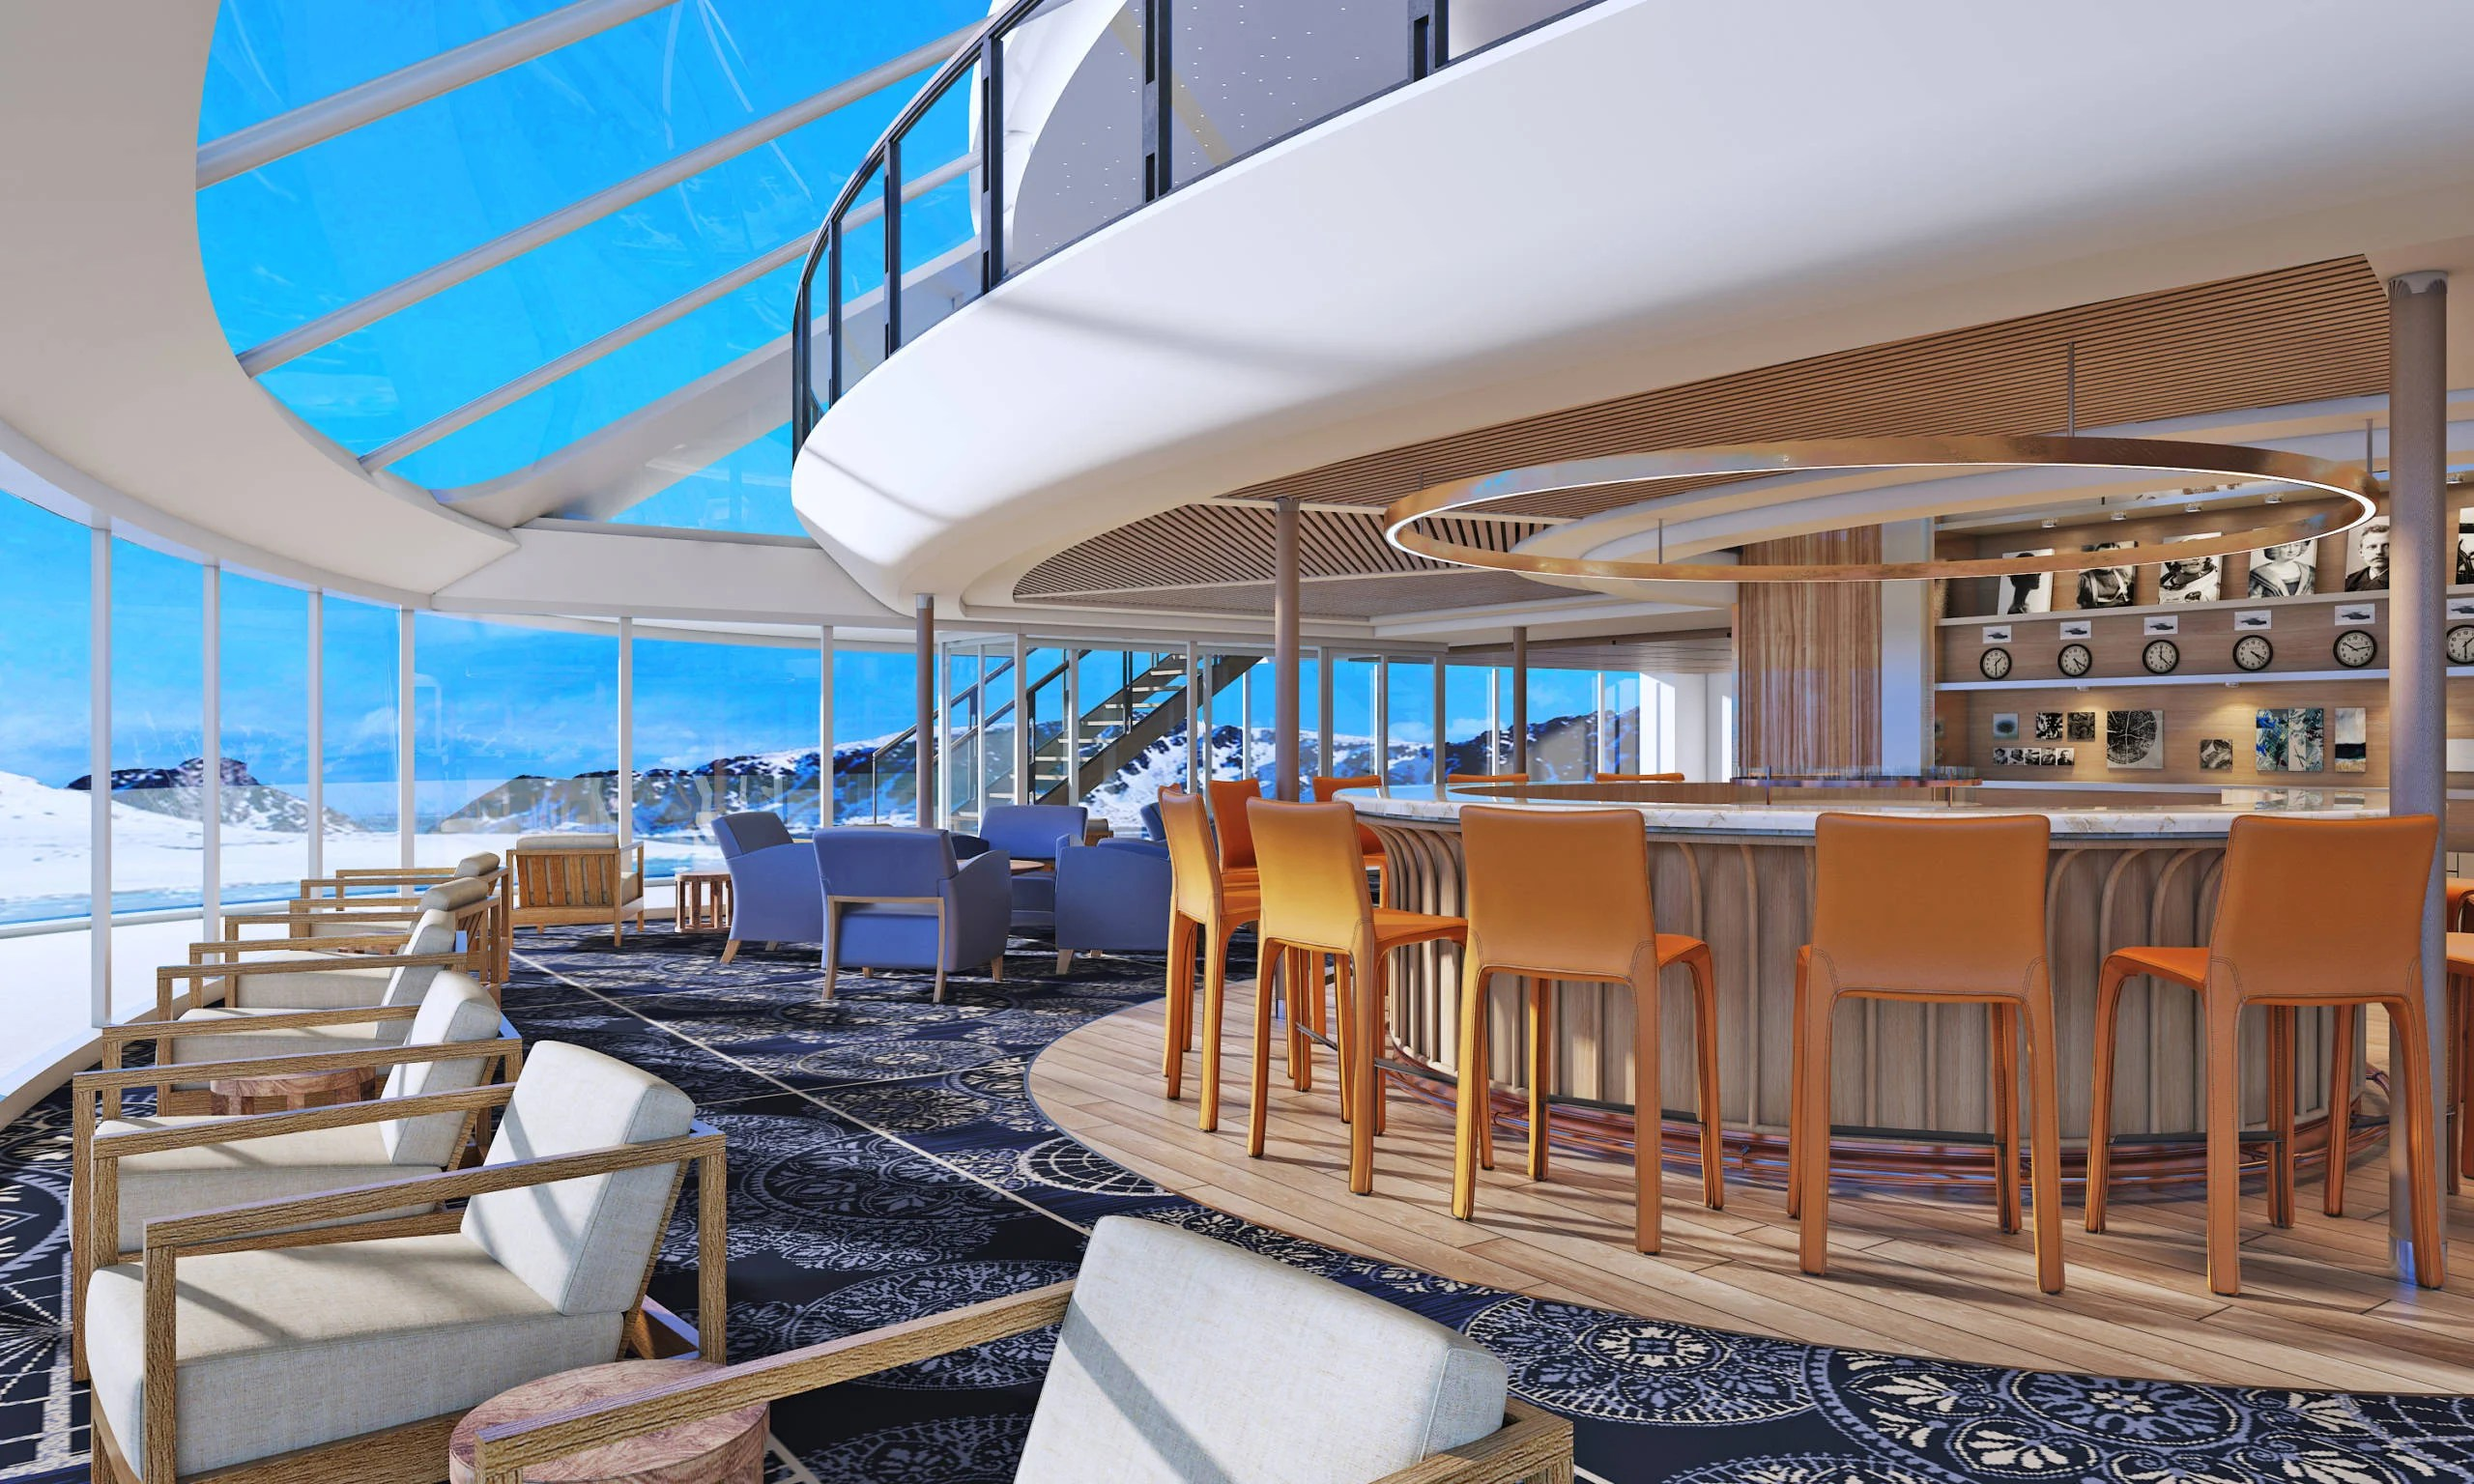 Each of Viking's new expedition ships will have a two-level Explorer's Lounge with floor-to-ceiling windows. Image courtesy of Viking.